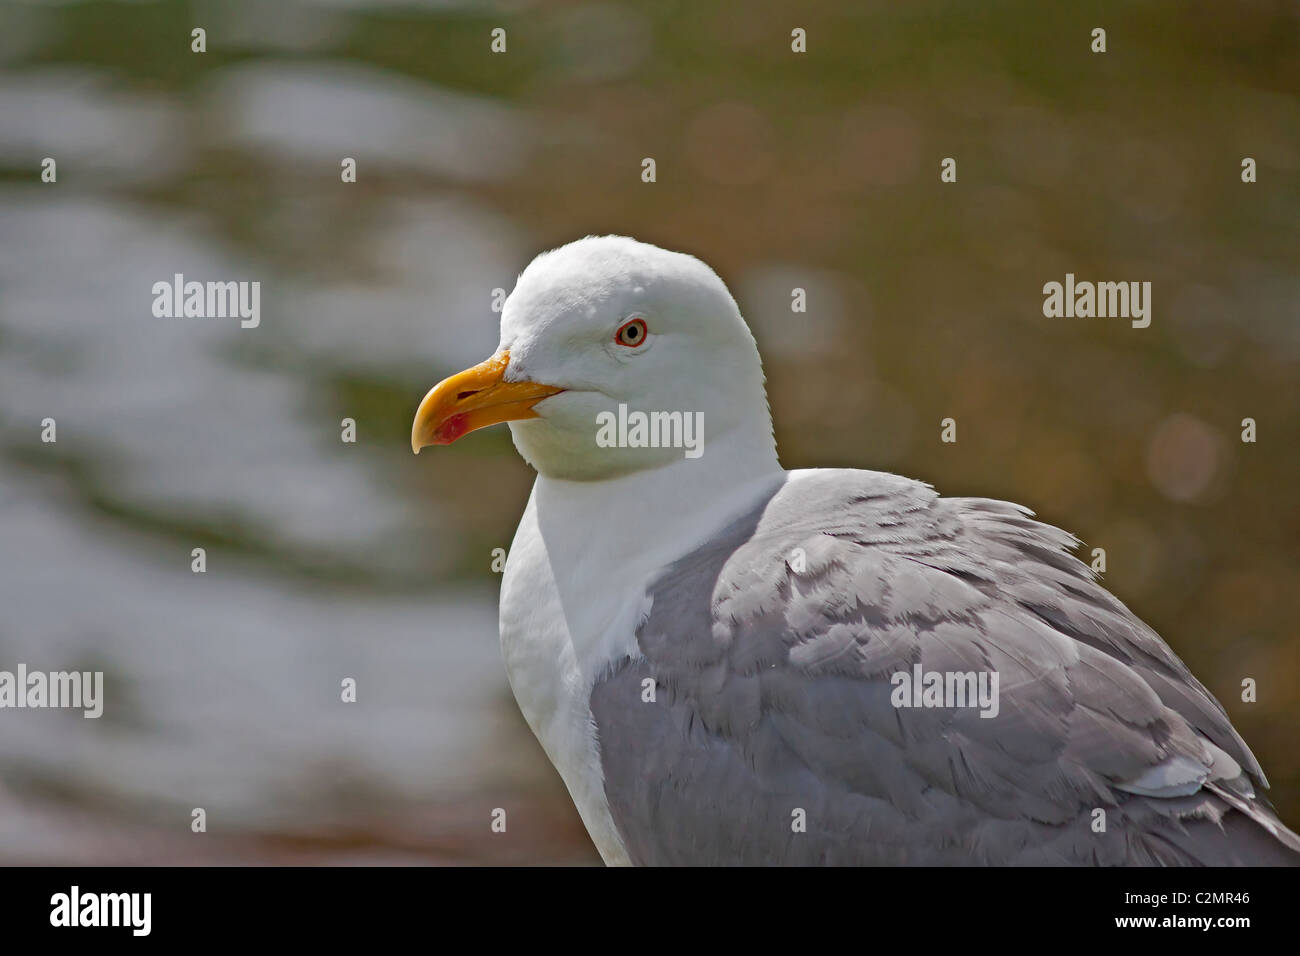 A seagull - Stock Image